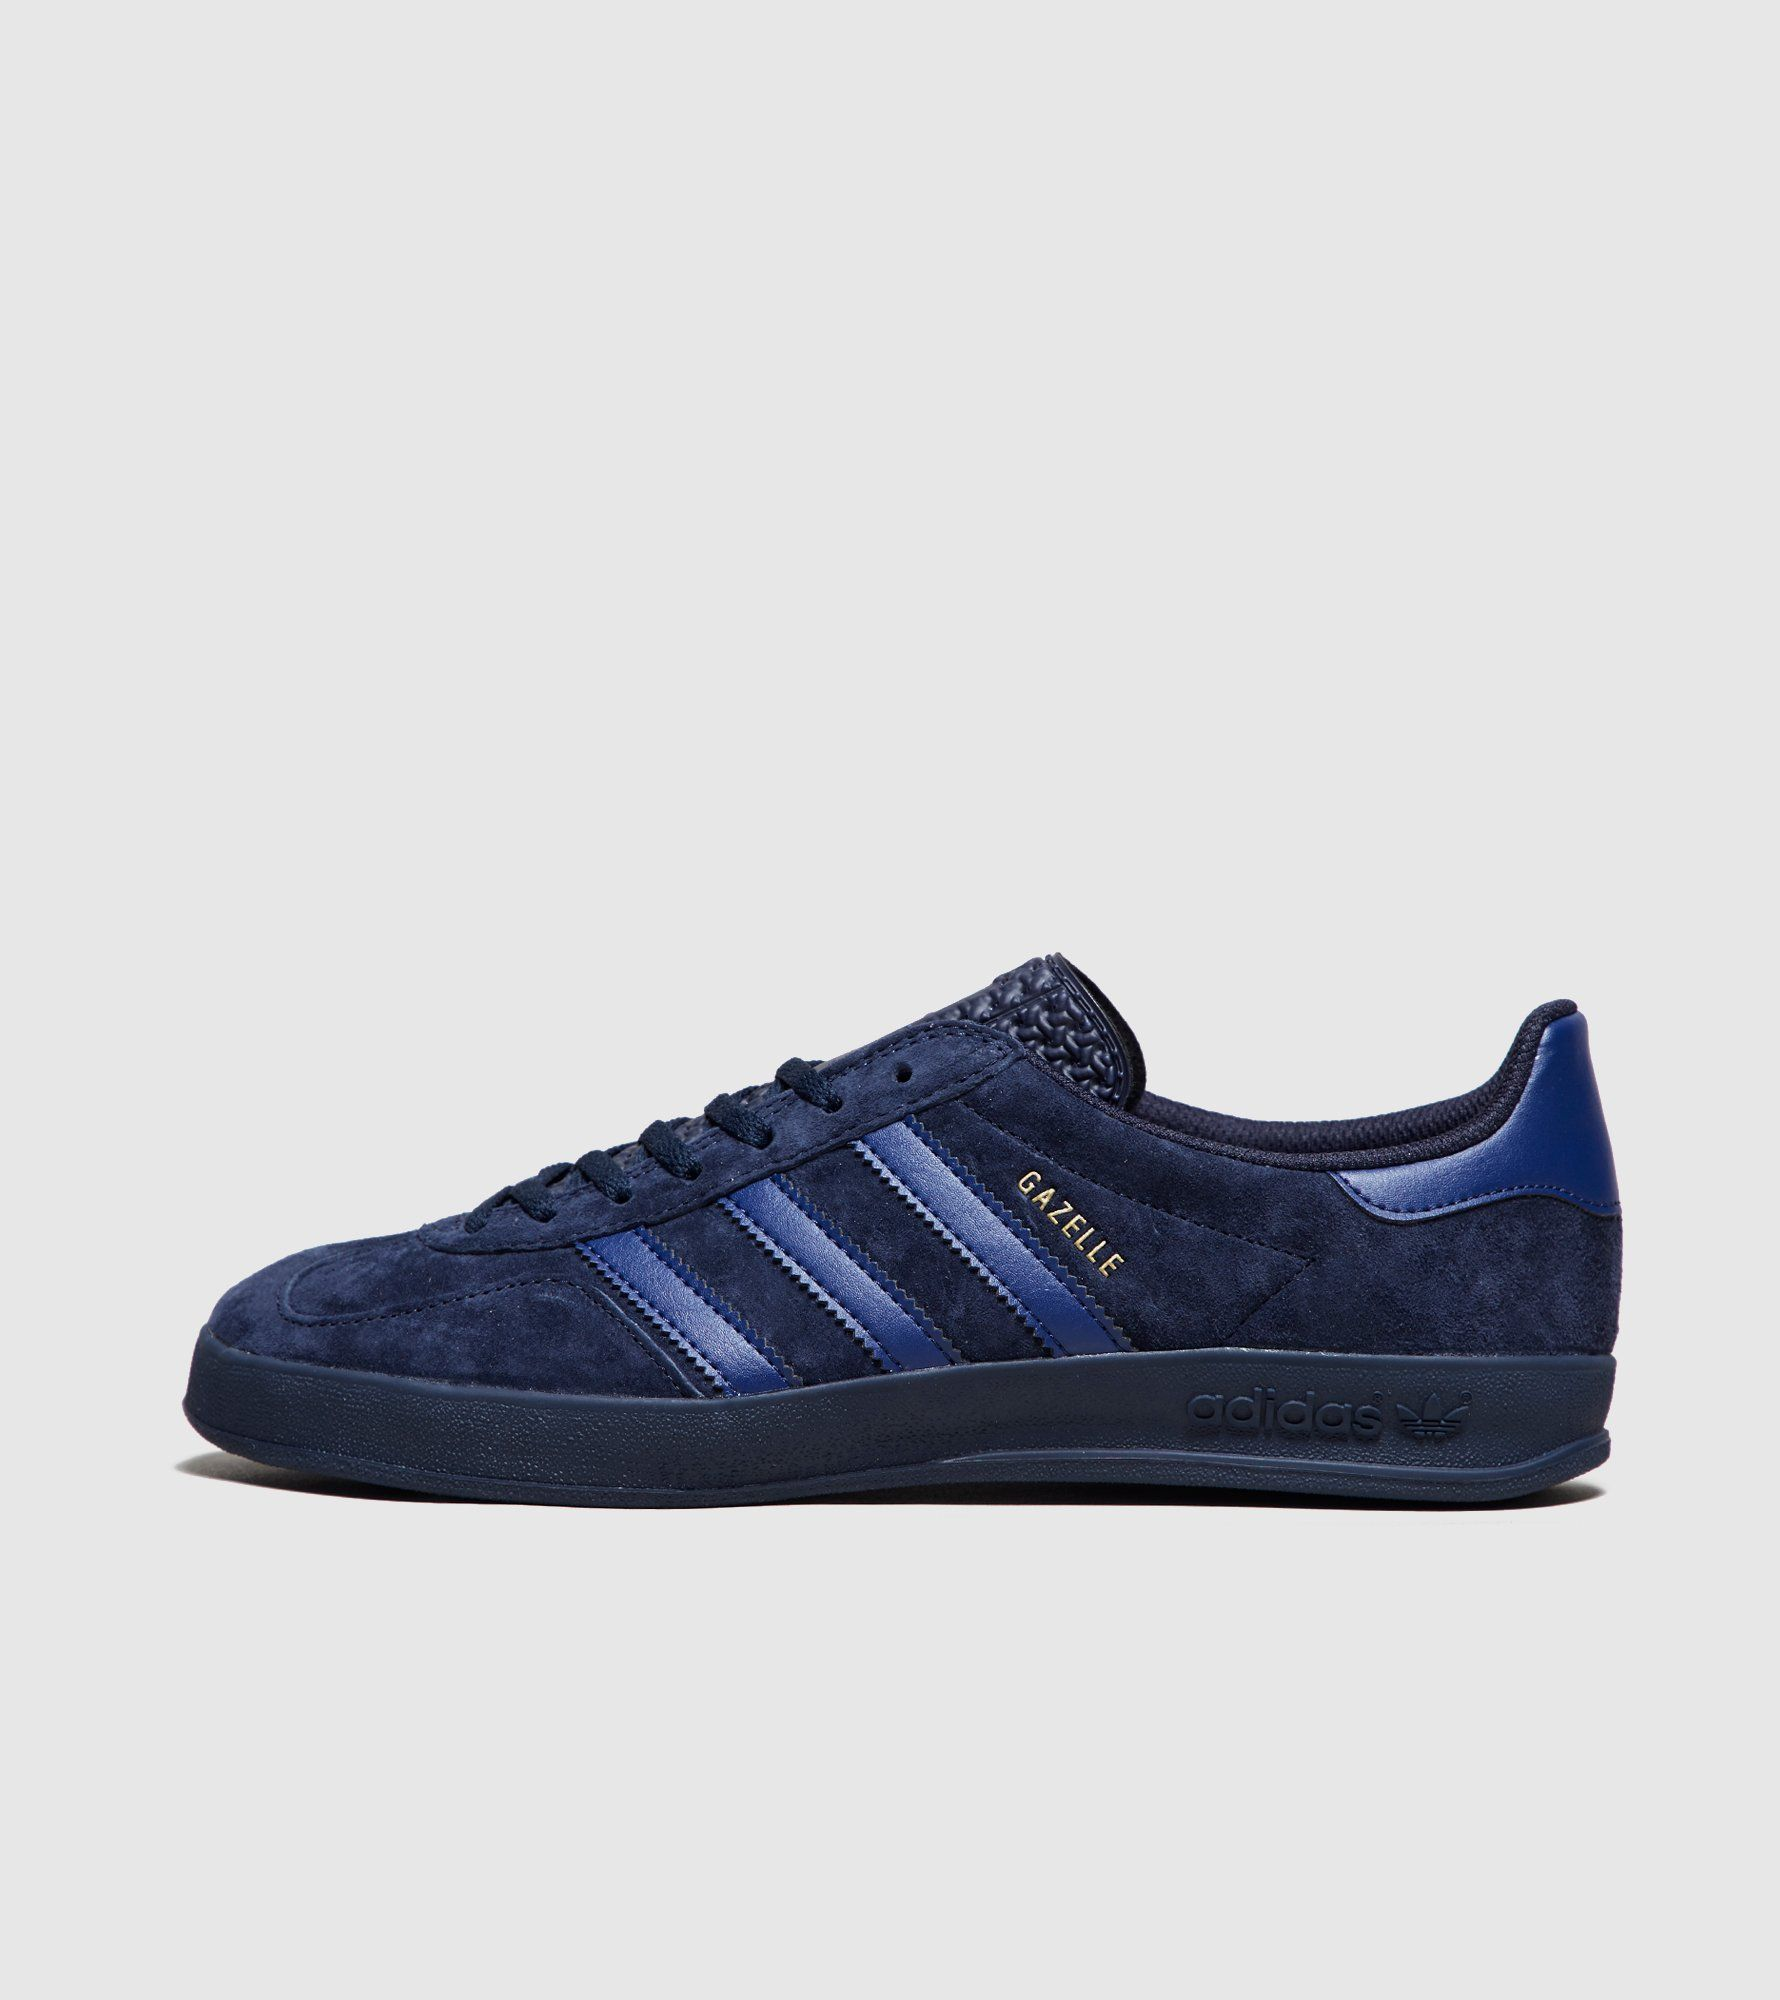 adidas Originals Gazelle Super - size? Exclusive